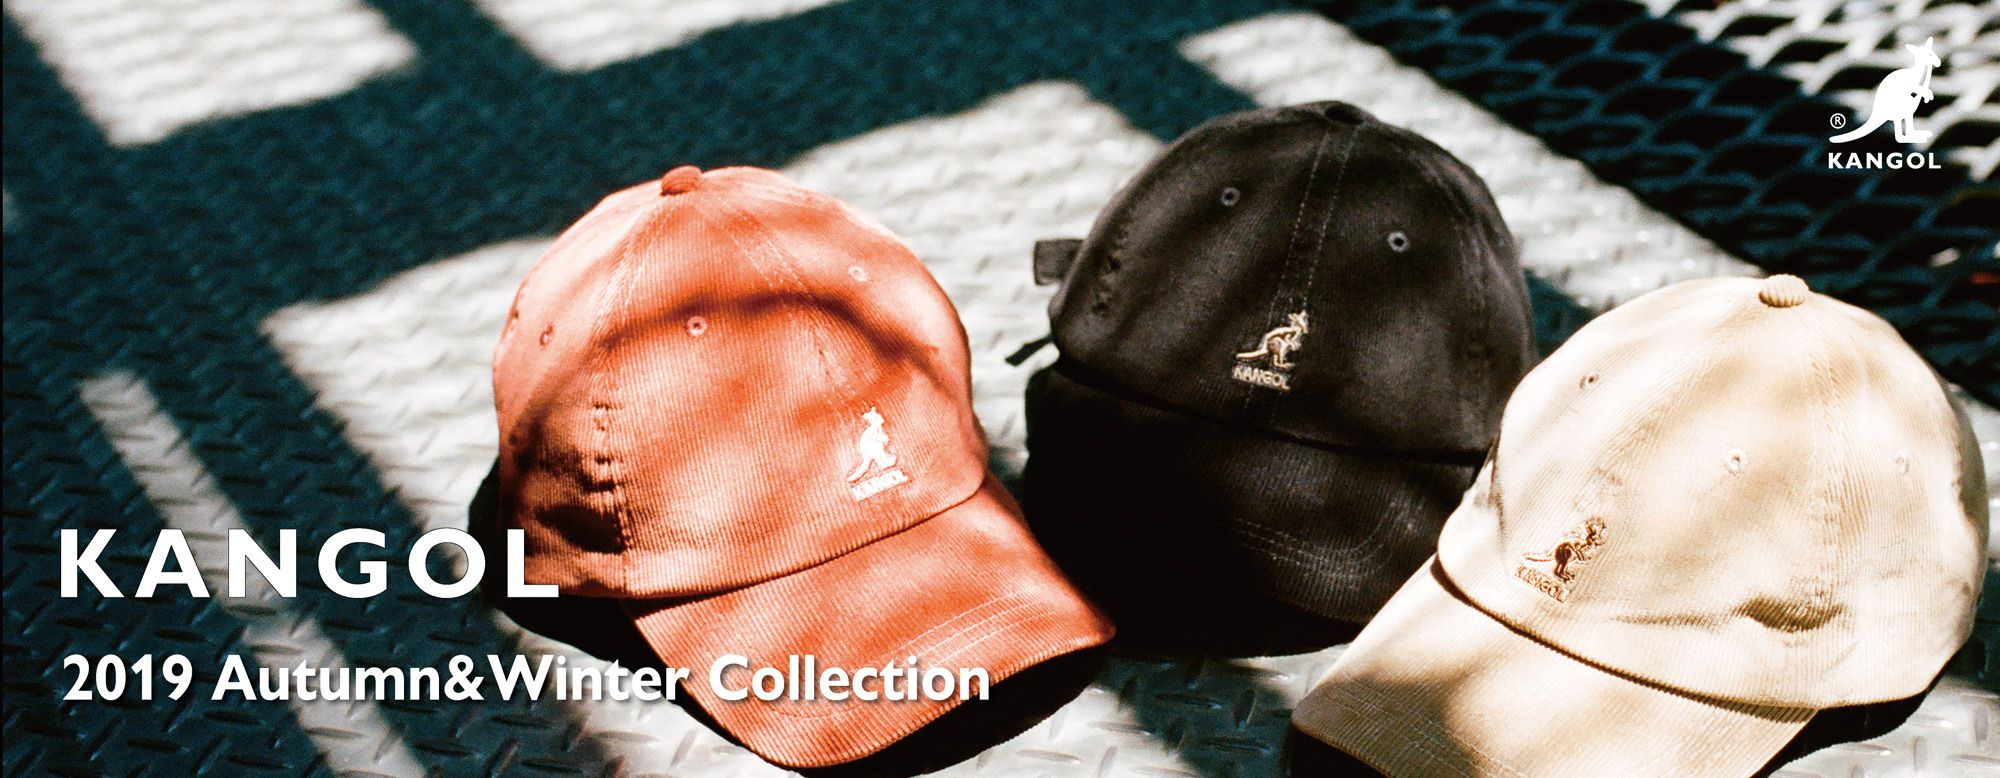 《KANGOL 2019 Autumn & Winter Collection 》